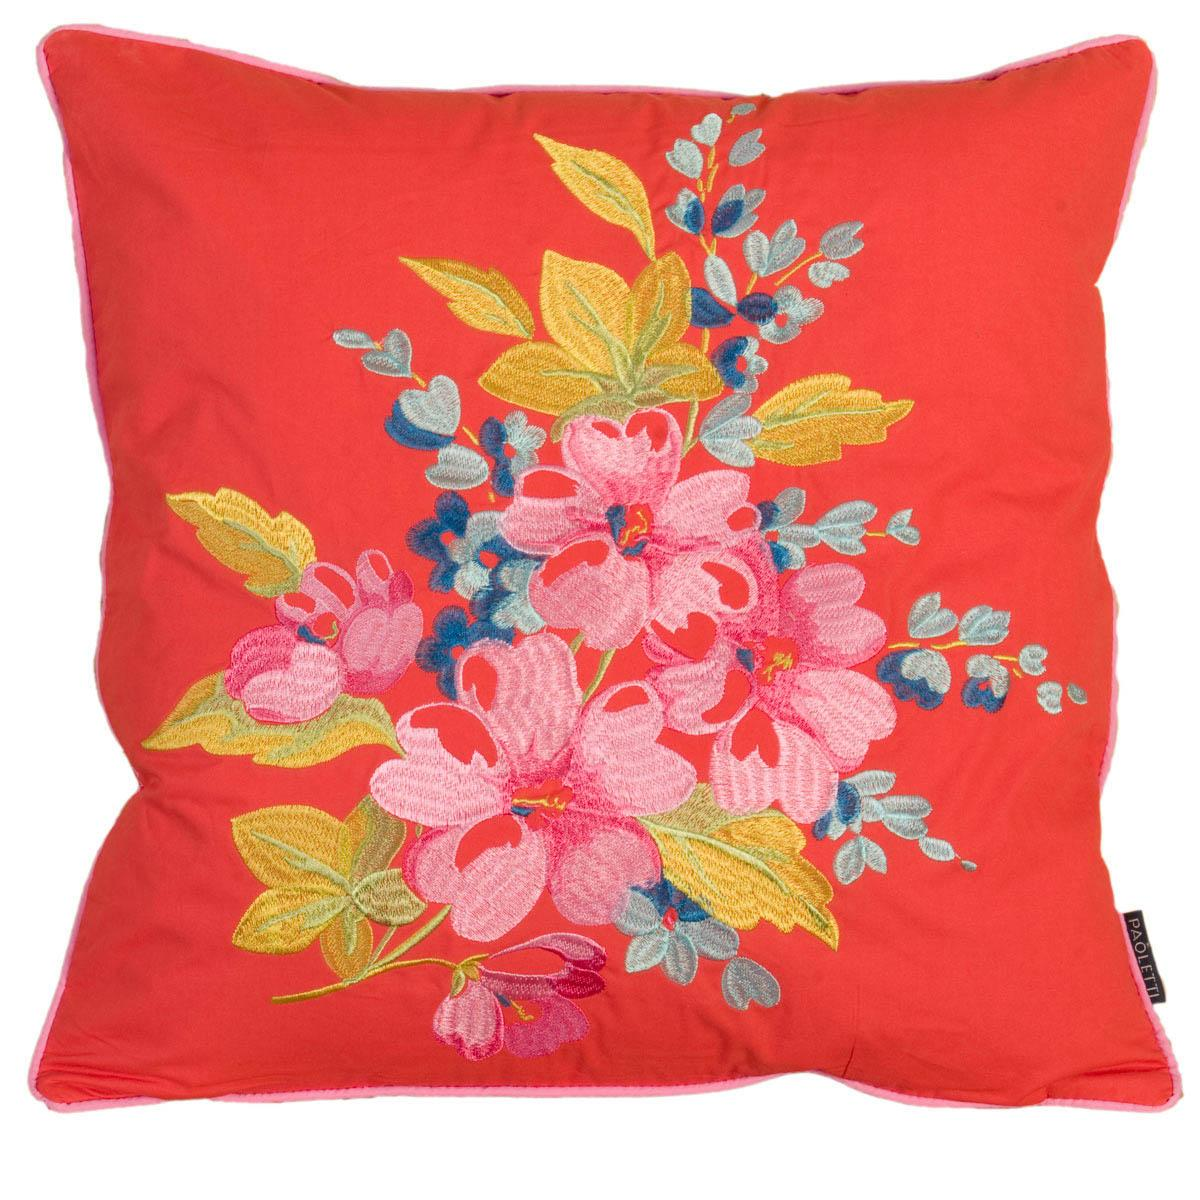 Riva Bedding Milly/Tilly Filled Cushion Red Picture